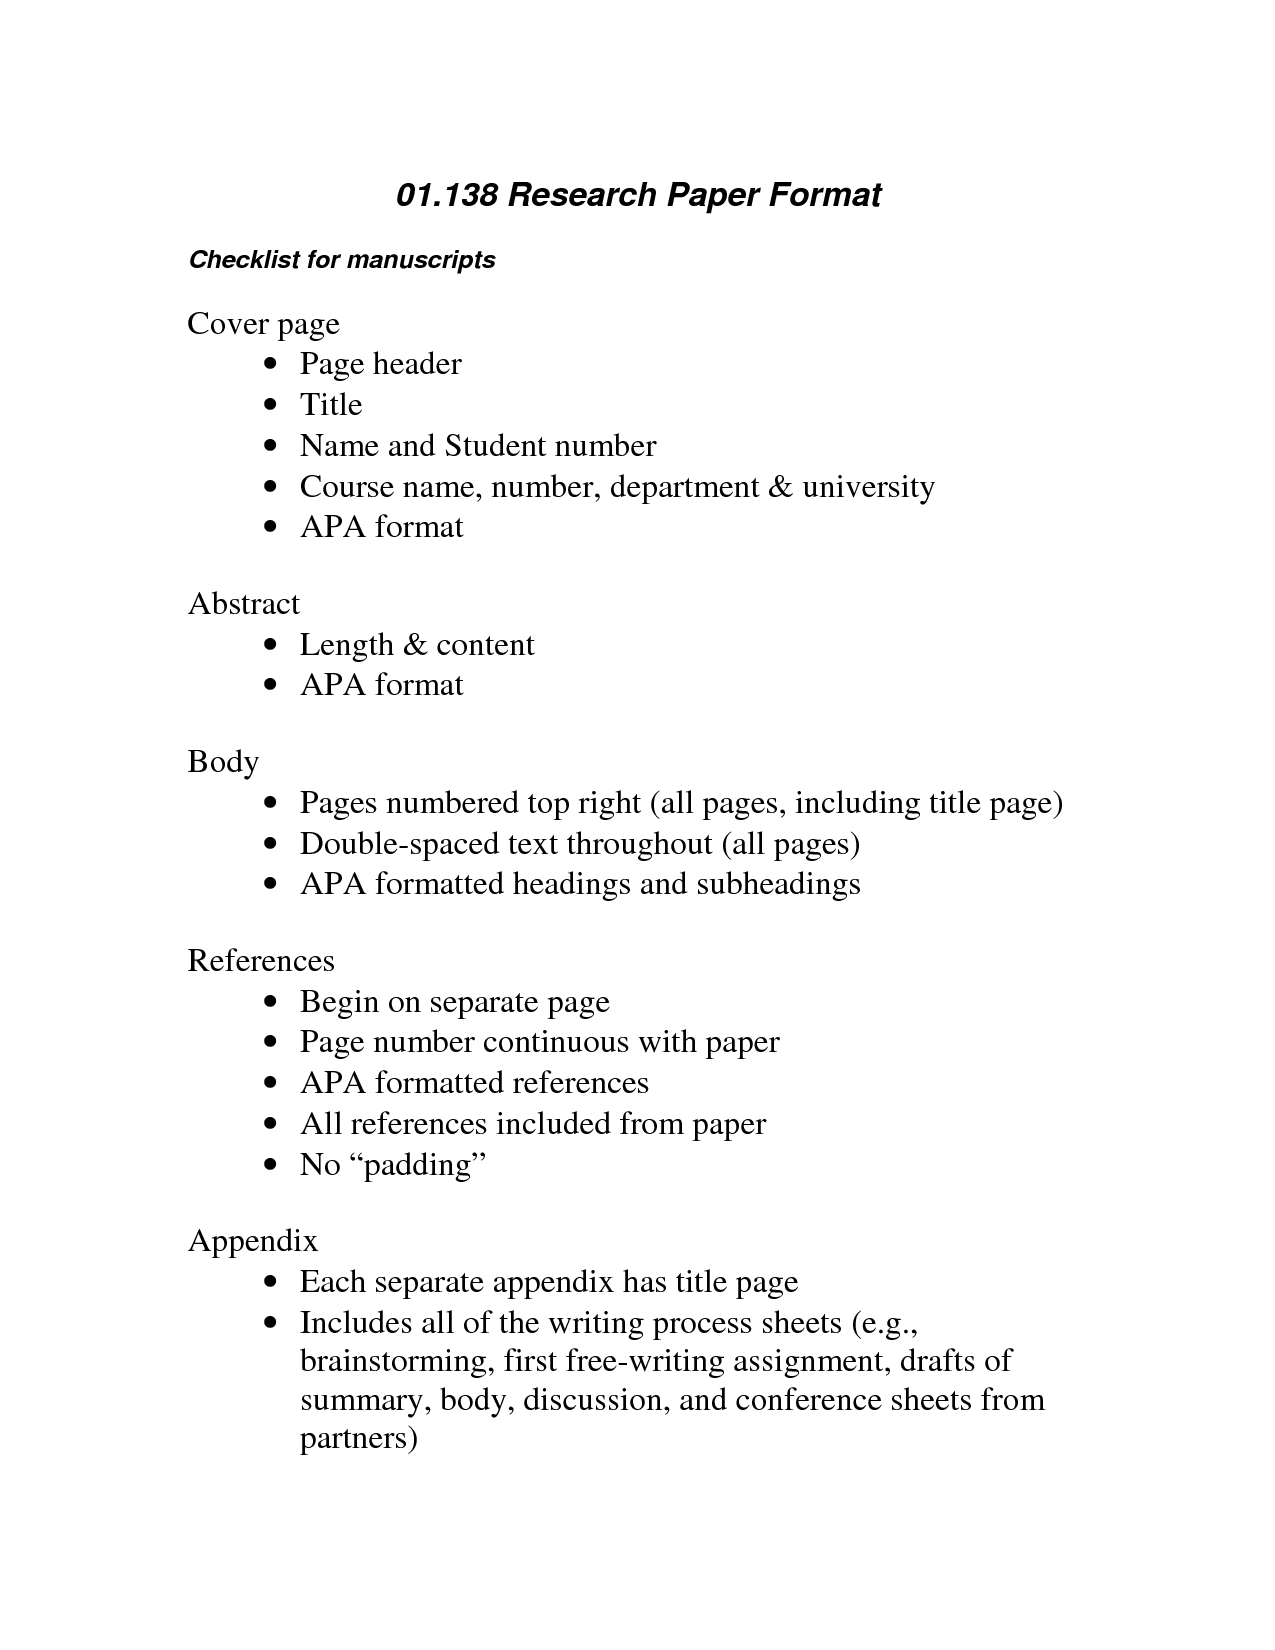 MLA Format Sample Paper, 7th Edition